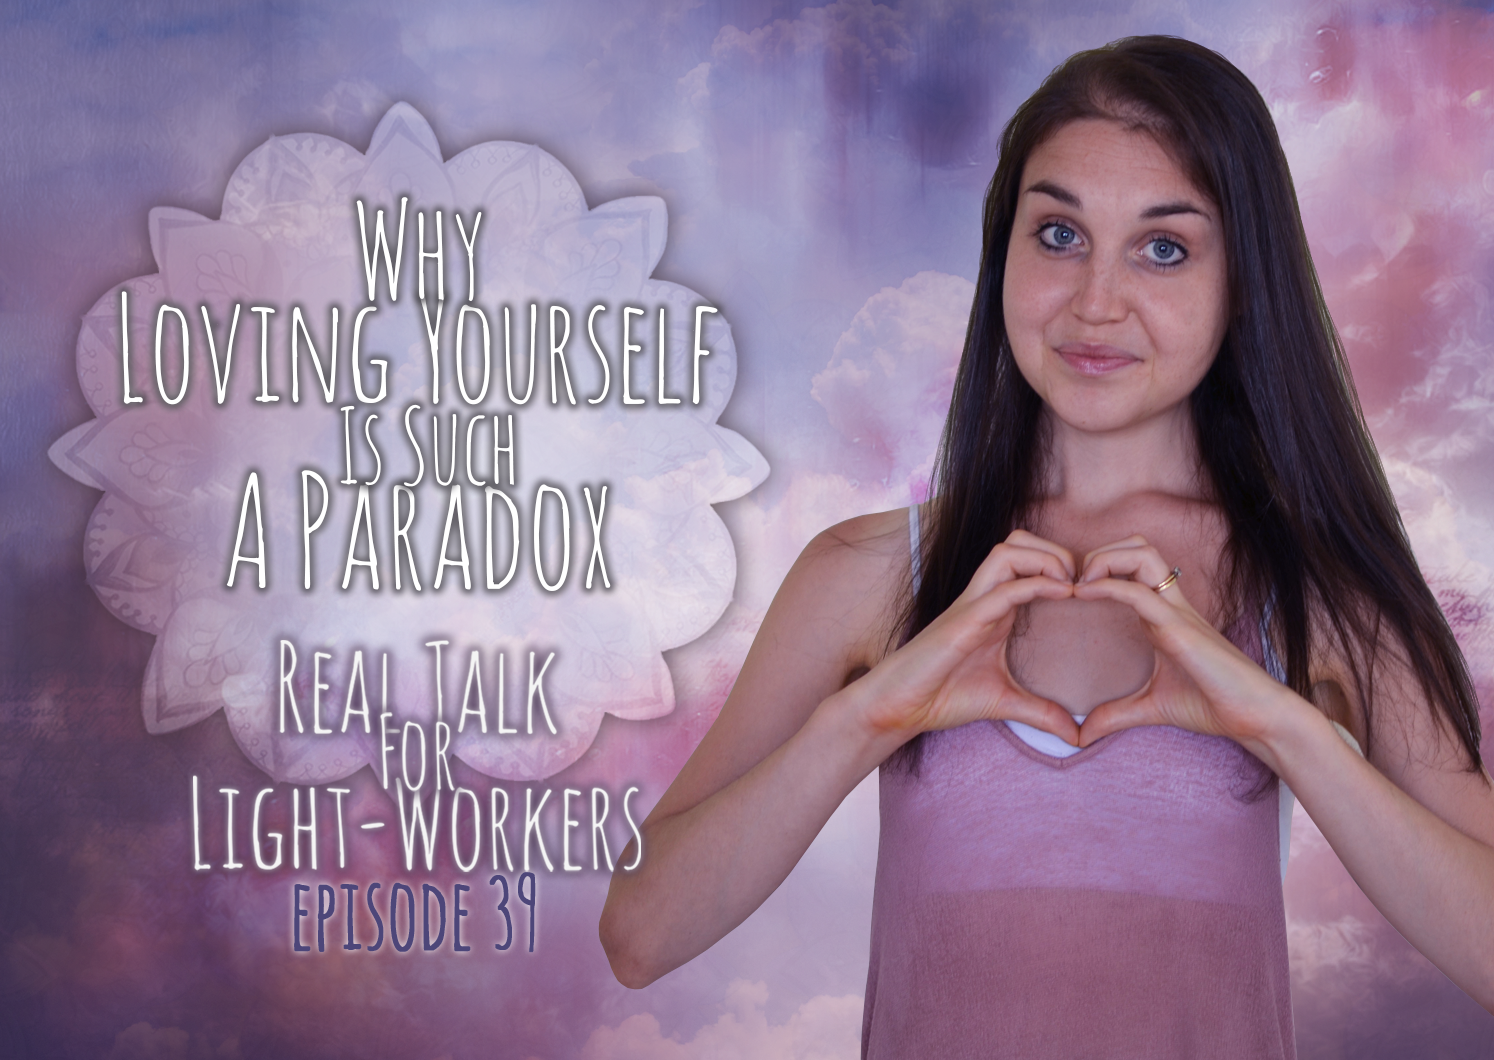 R.T.F.L.W.E.39: Why Self Love Is Such A Paradox